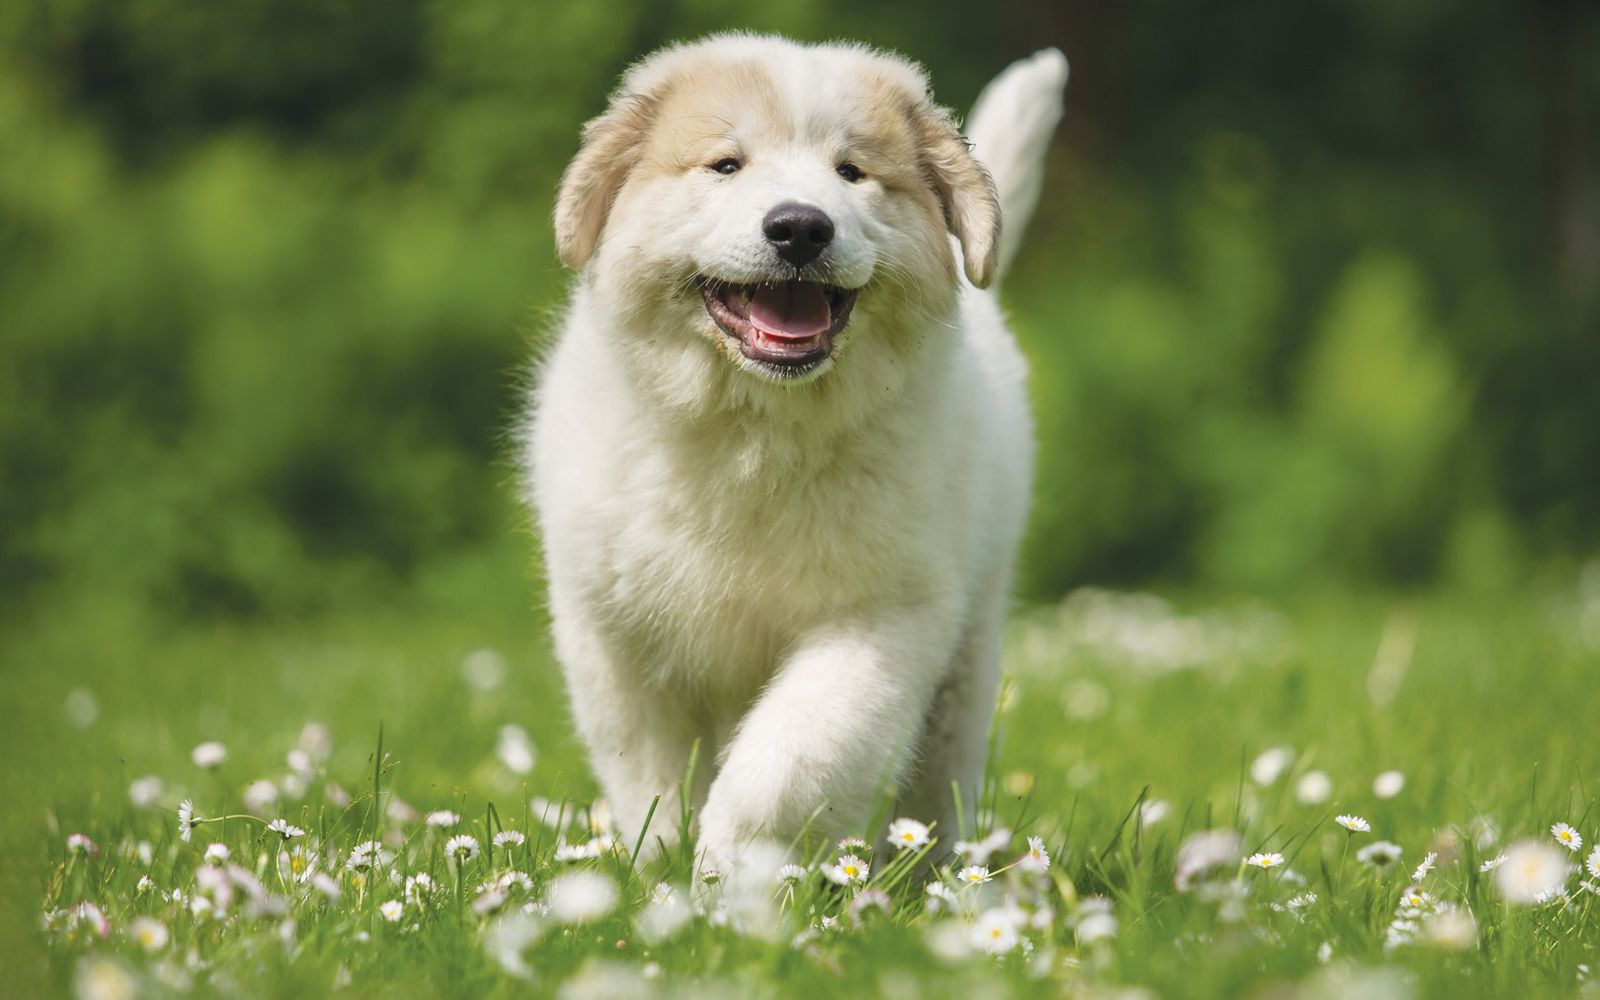 Pyrenean Mountain Dog - Puppy